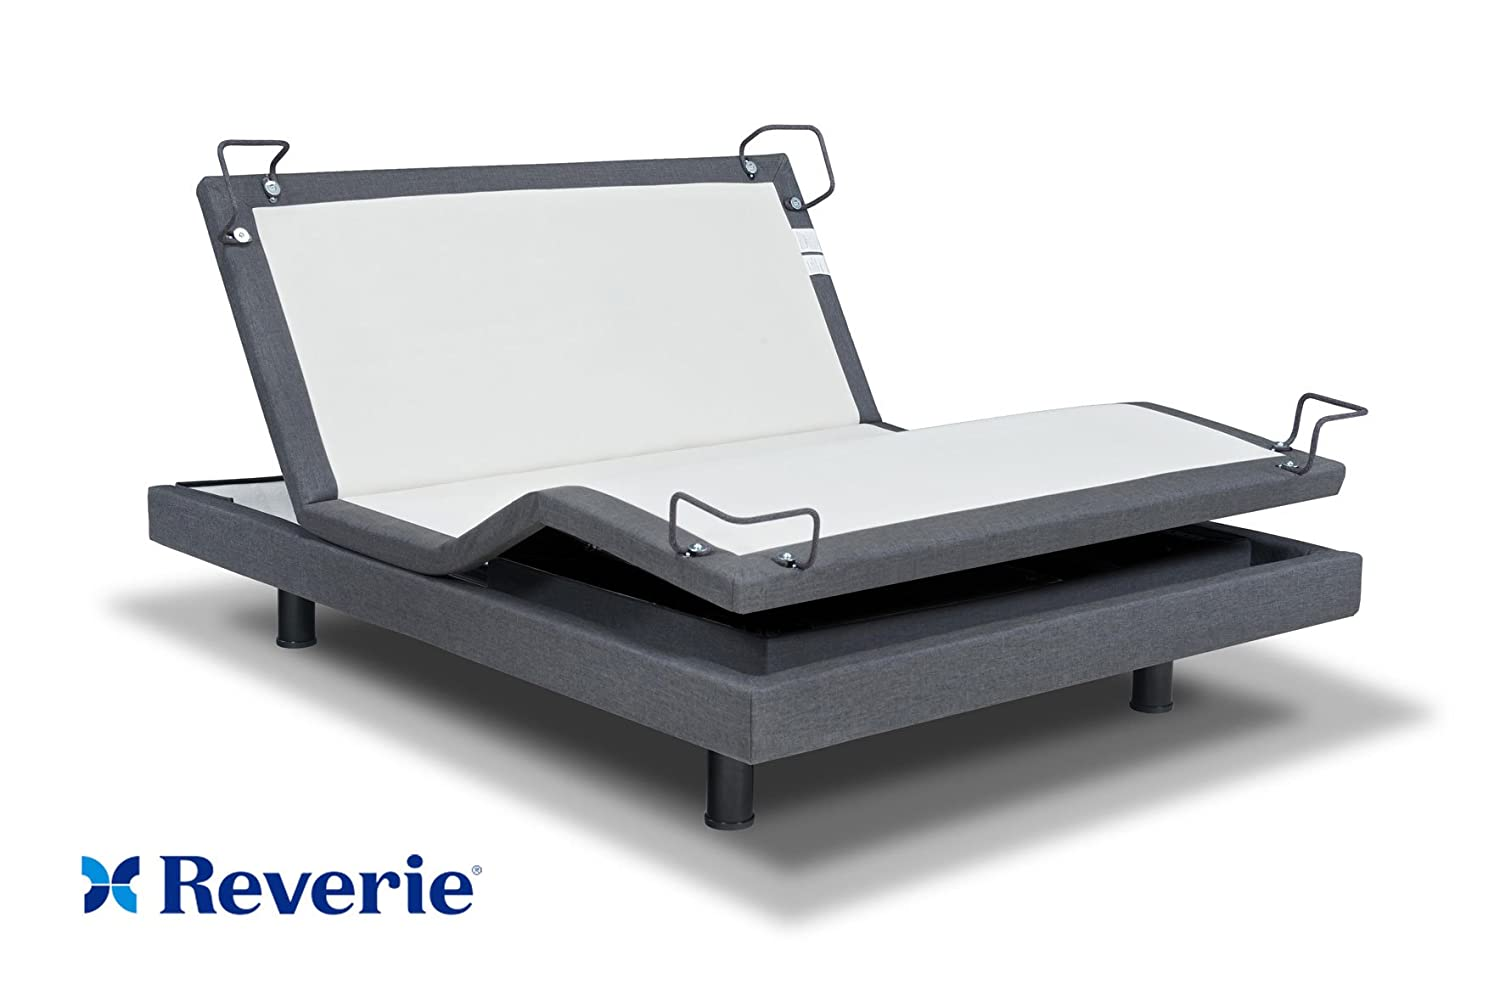 Reverie Adjustable Bed Review - Beds.org